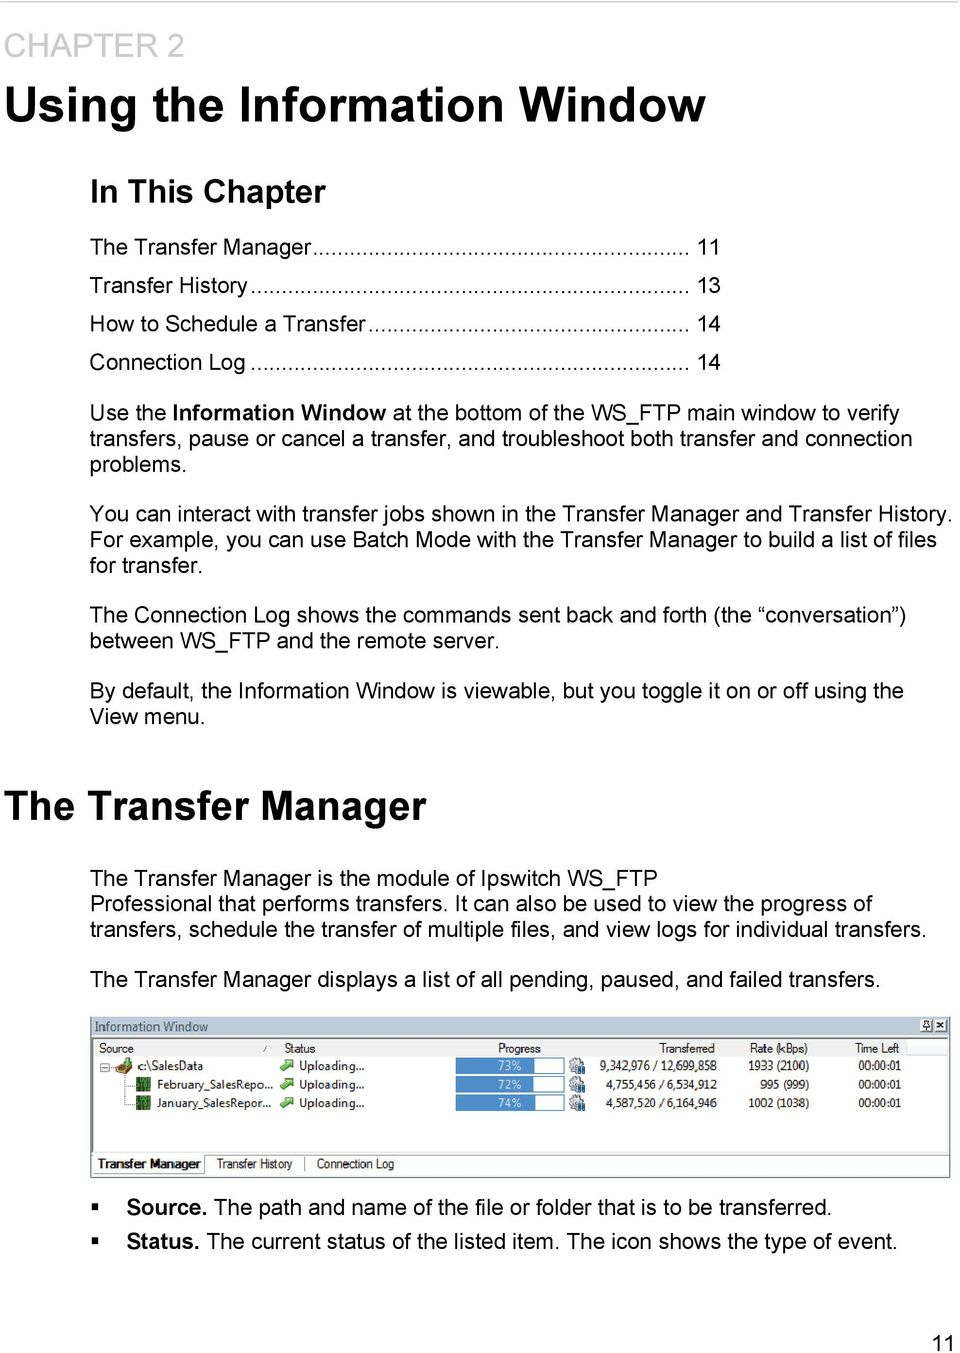 You can interact with transfer jobs shown in the Transfer Manager and Transfer History. For example, you can use Batch Mode with the Transfer Manager to build a list of files for transfer.